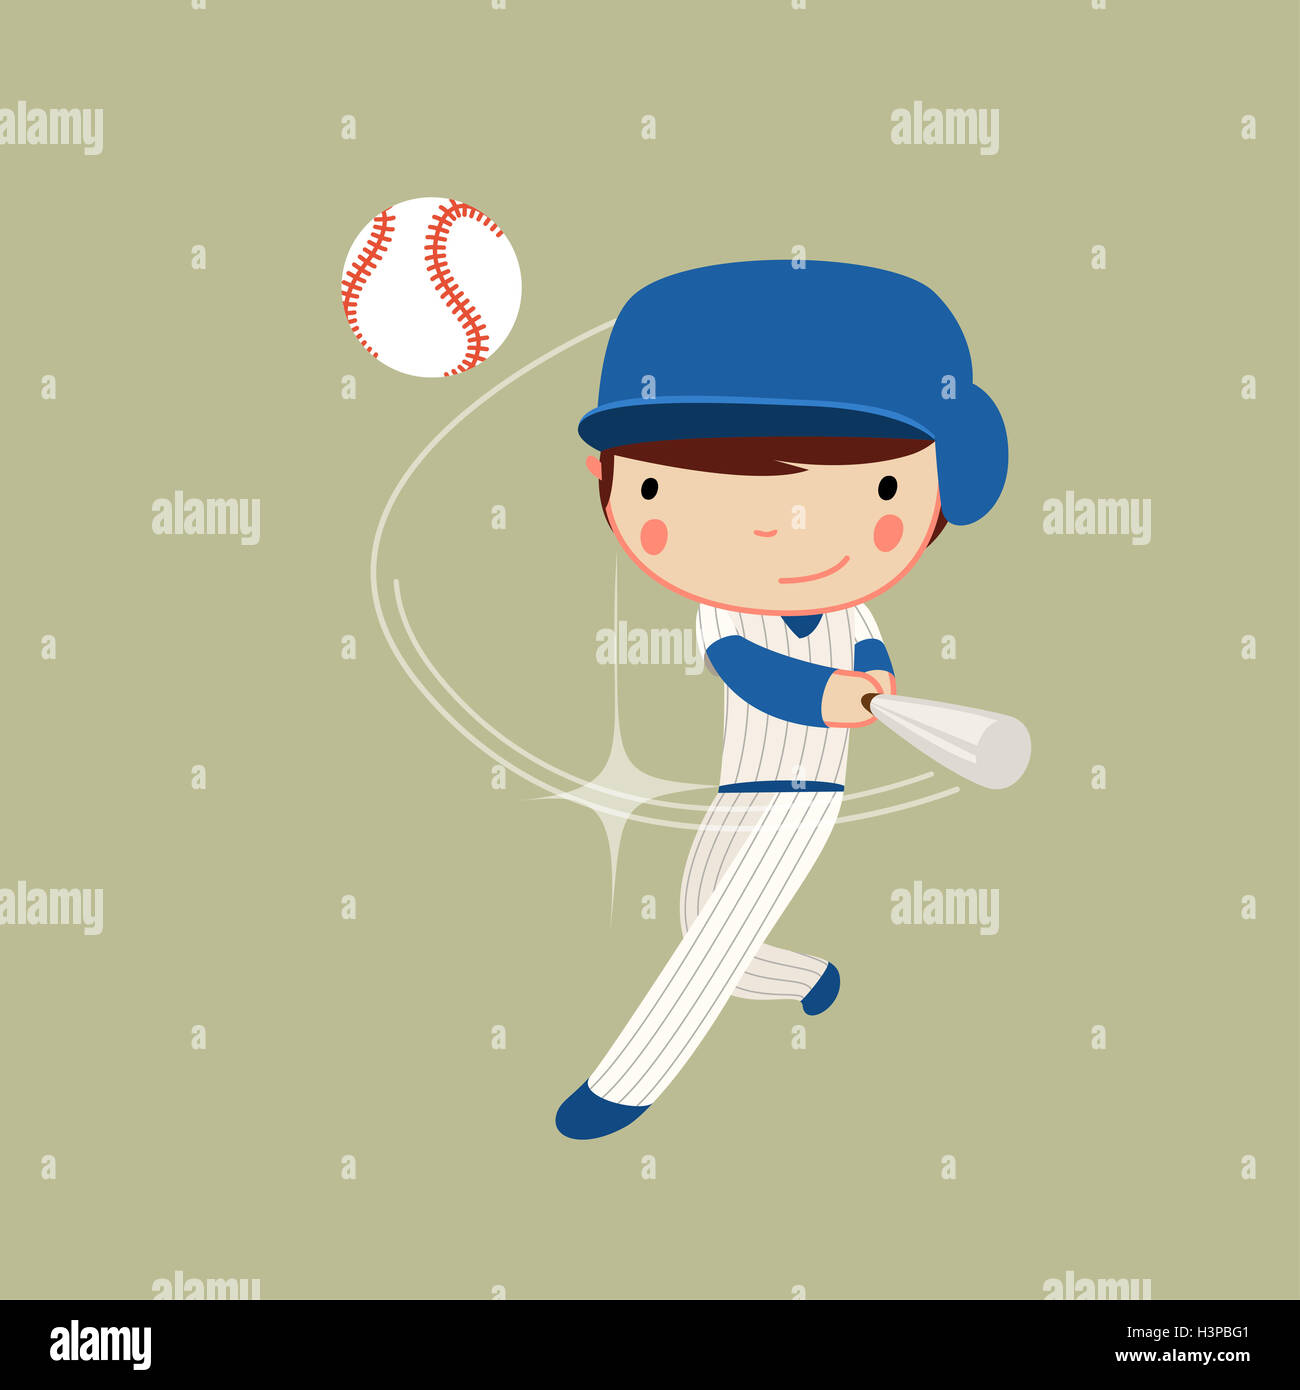 Cap Drawing Baseball Stockfotos & Cap Drawing Baseball Bilder ...